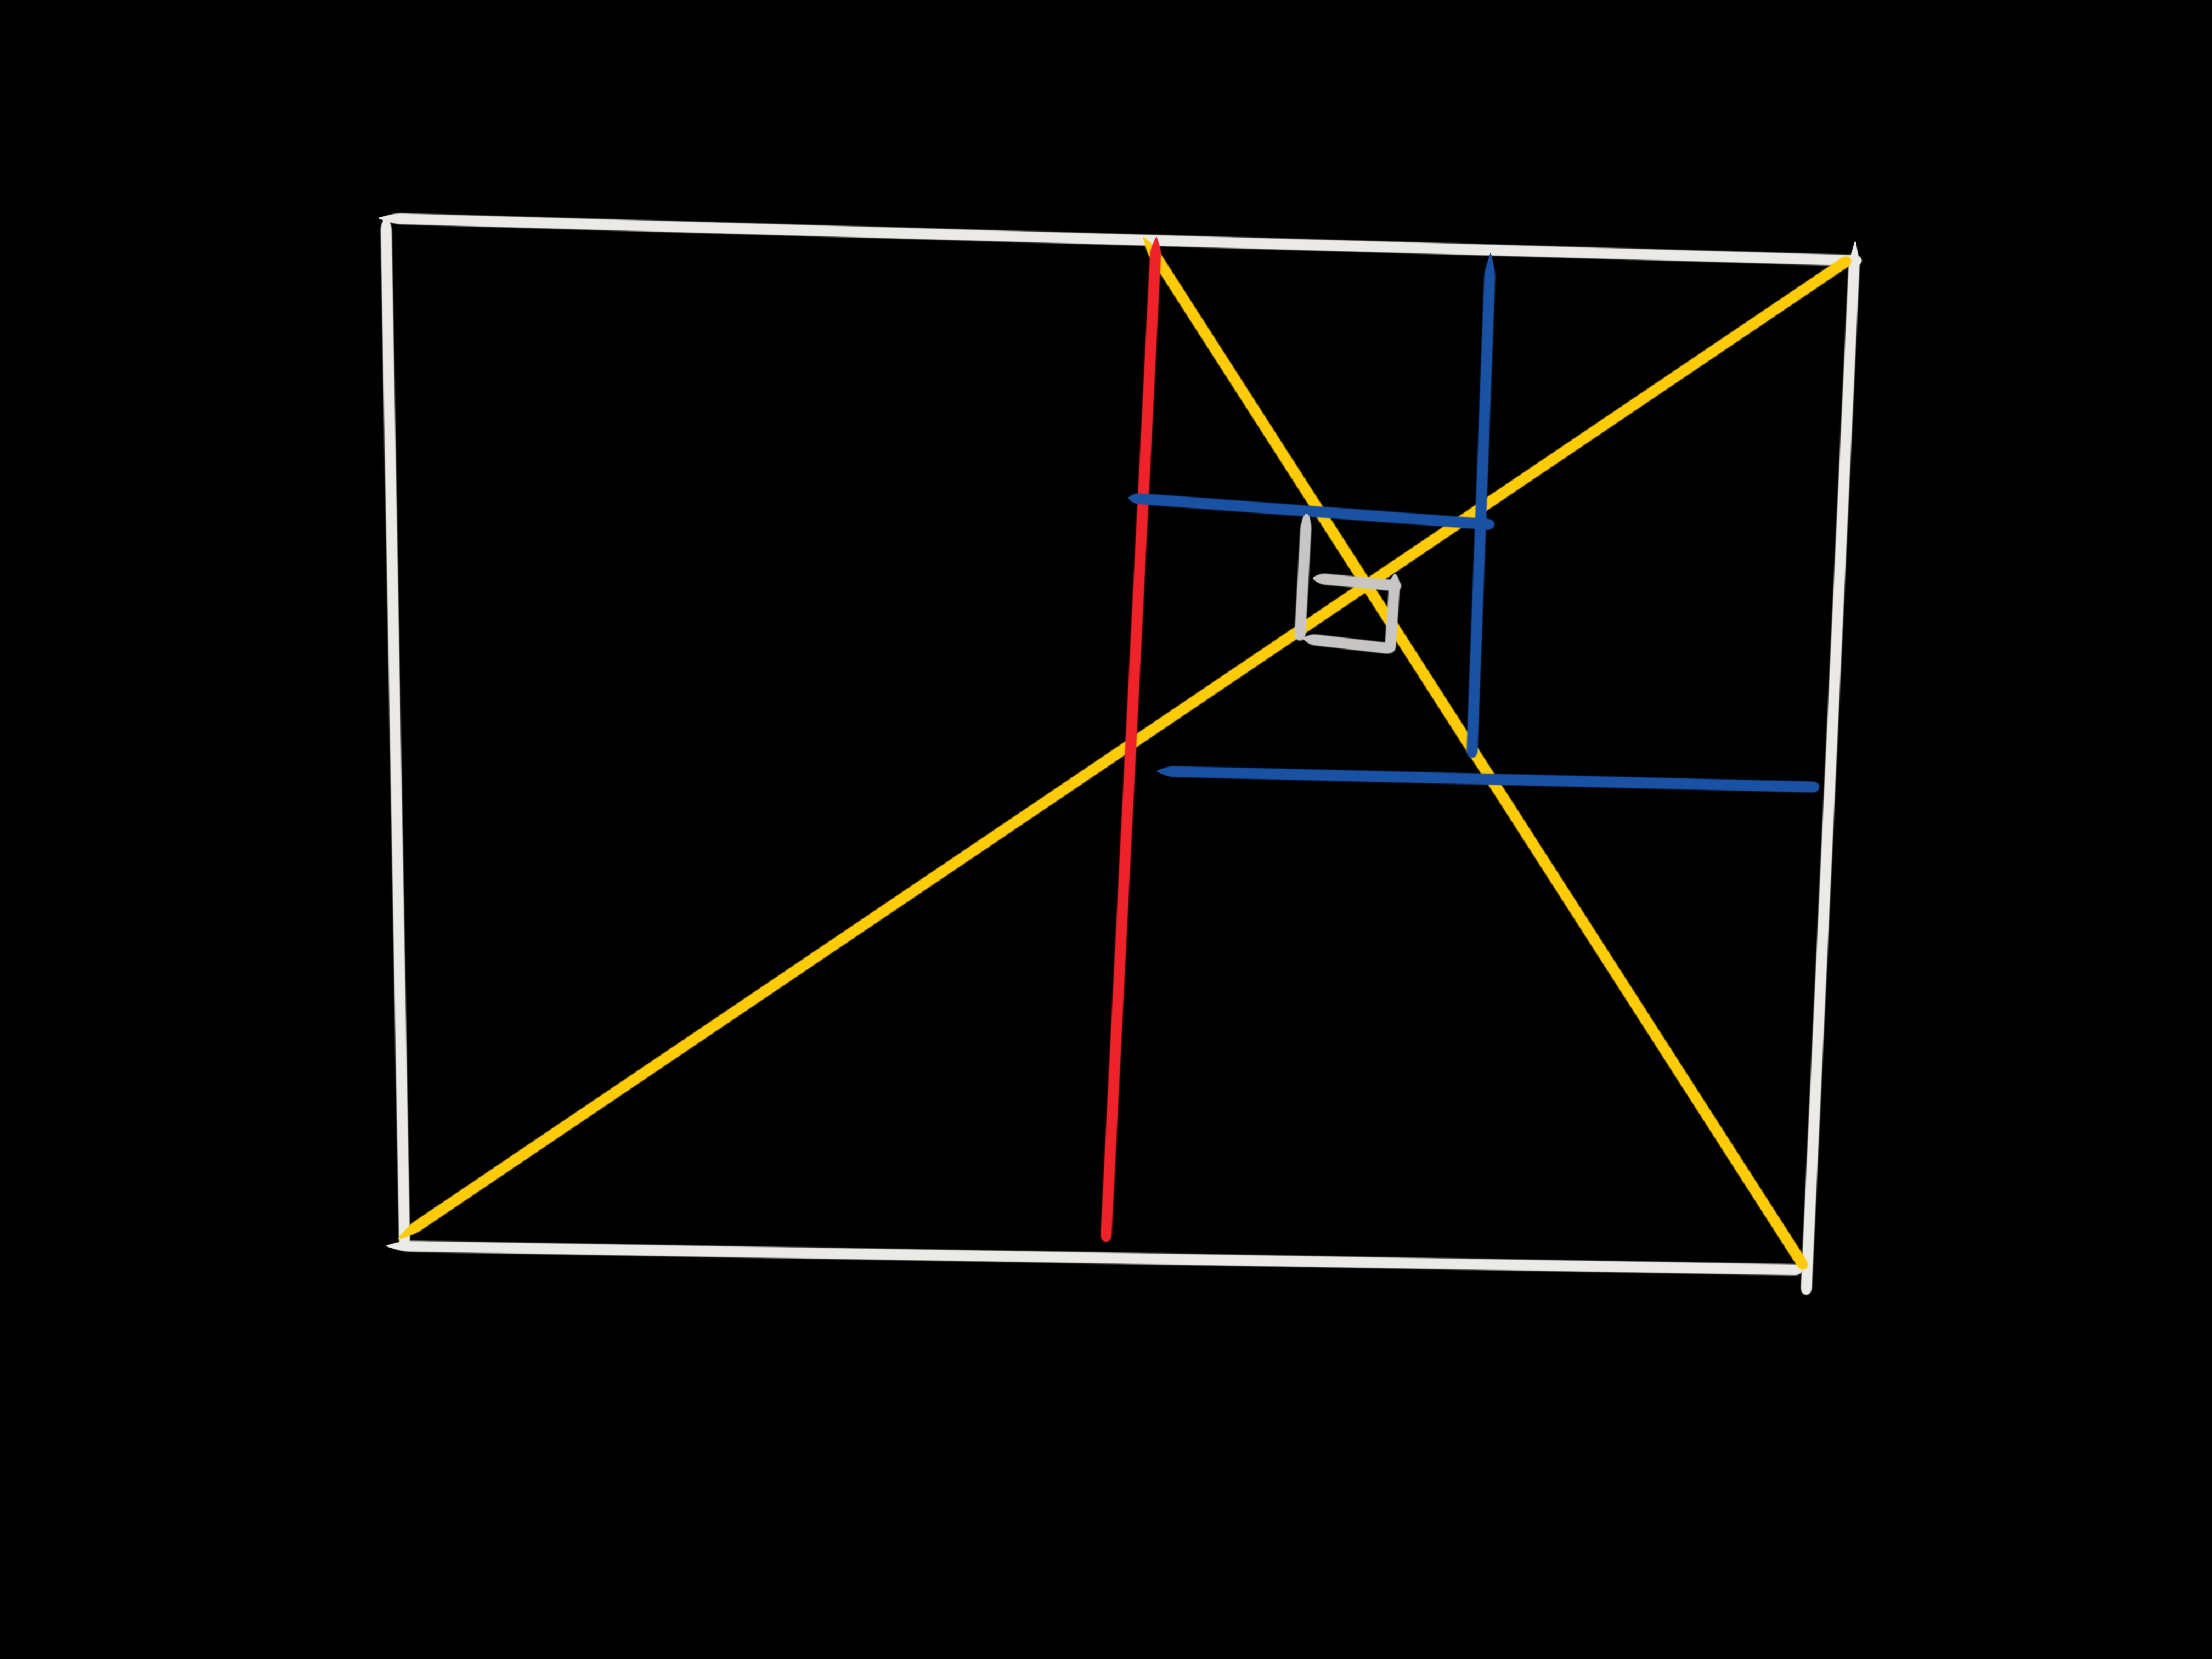 Golden rectangle.